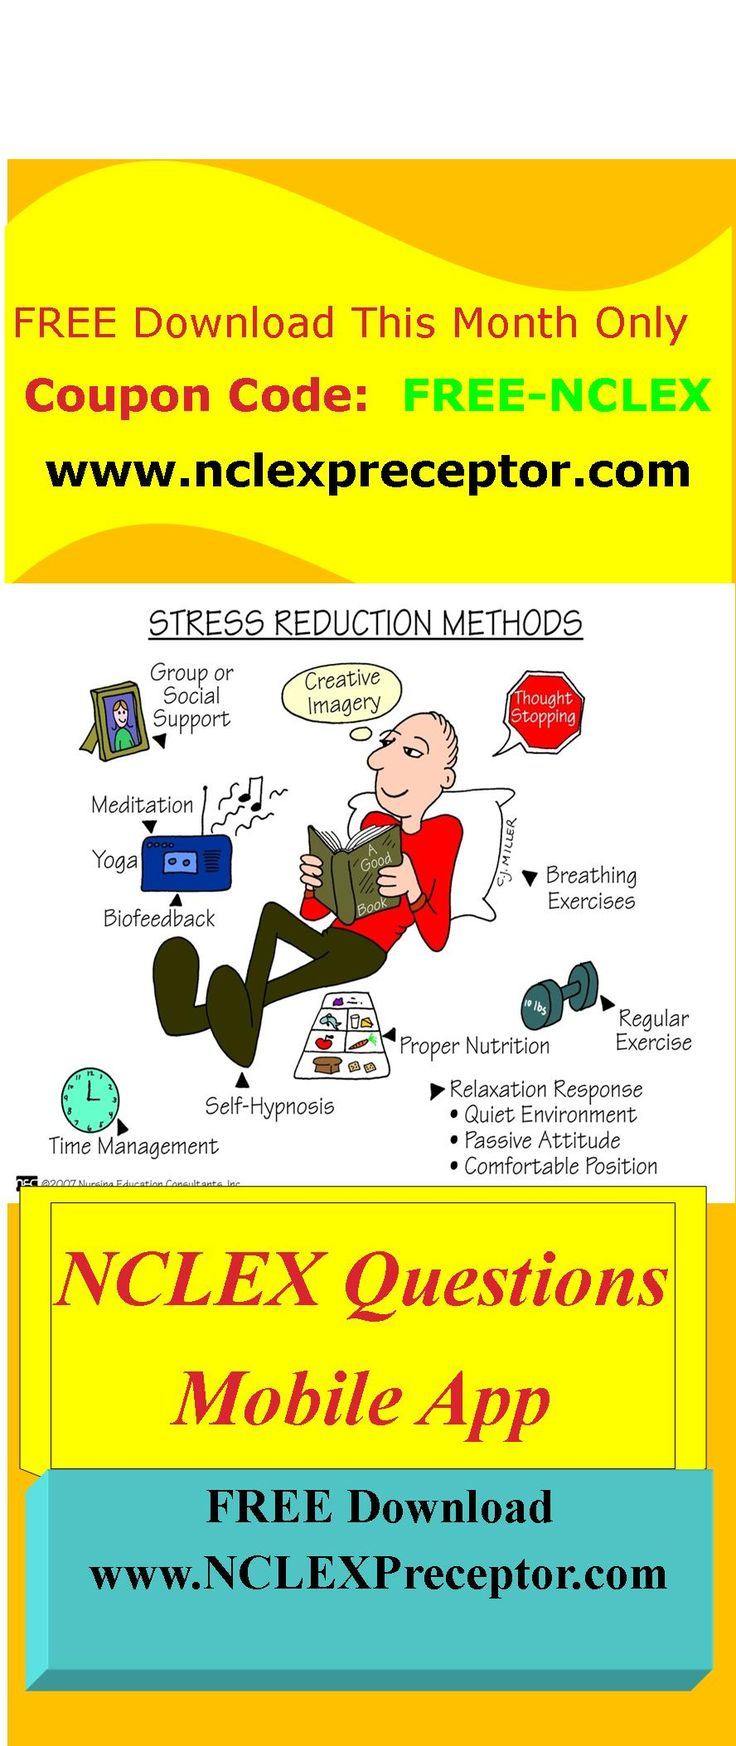 Practice NCLEX Questions on stress reductions.  Learn NCLEX Tips to pass NCLEX-RN exam.  Download FREE NCLEX Questions Mobile App at www.nclexpreceptor.com